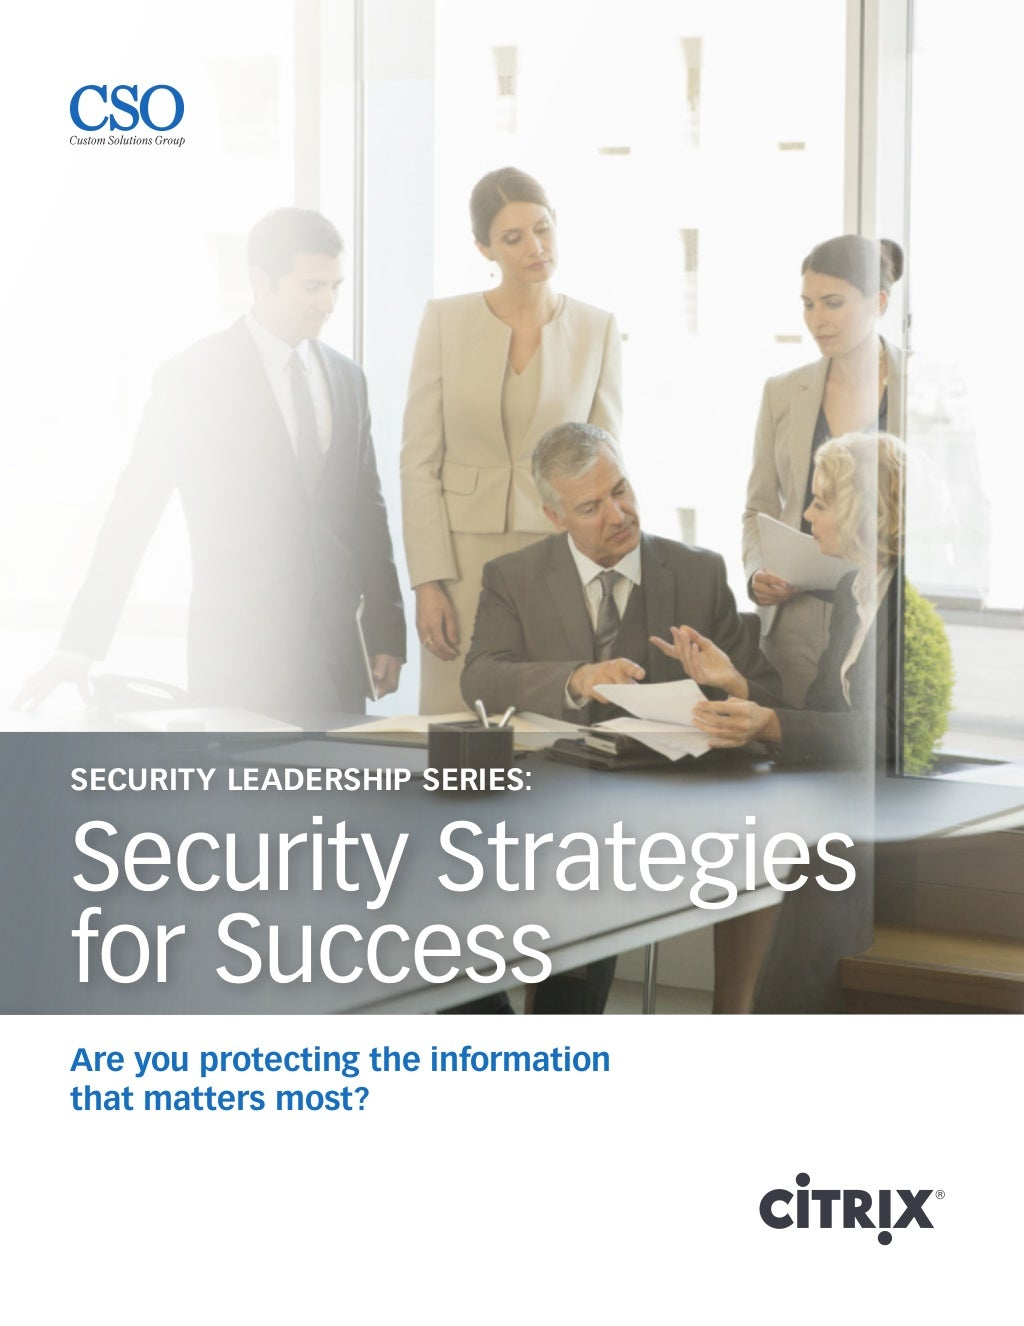 Security Strategies for Success